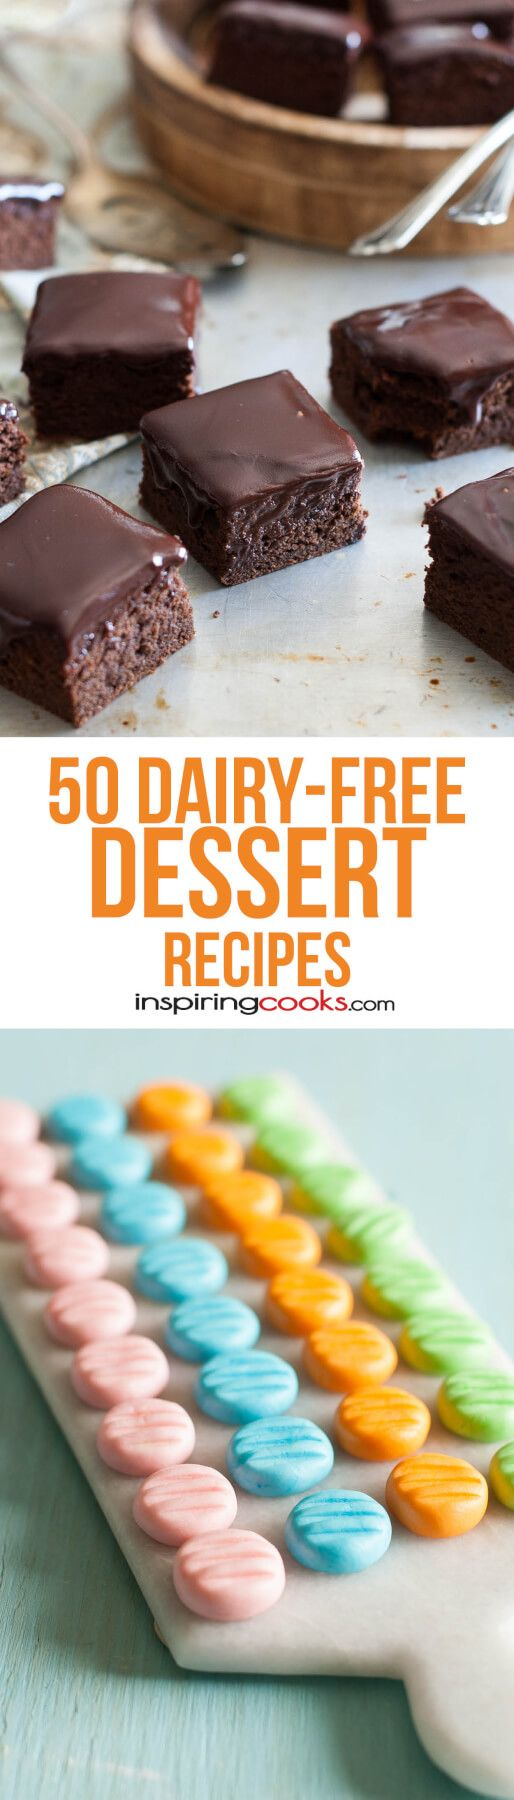 50 of The Best Dairy-Free Dessert Recipes